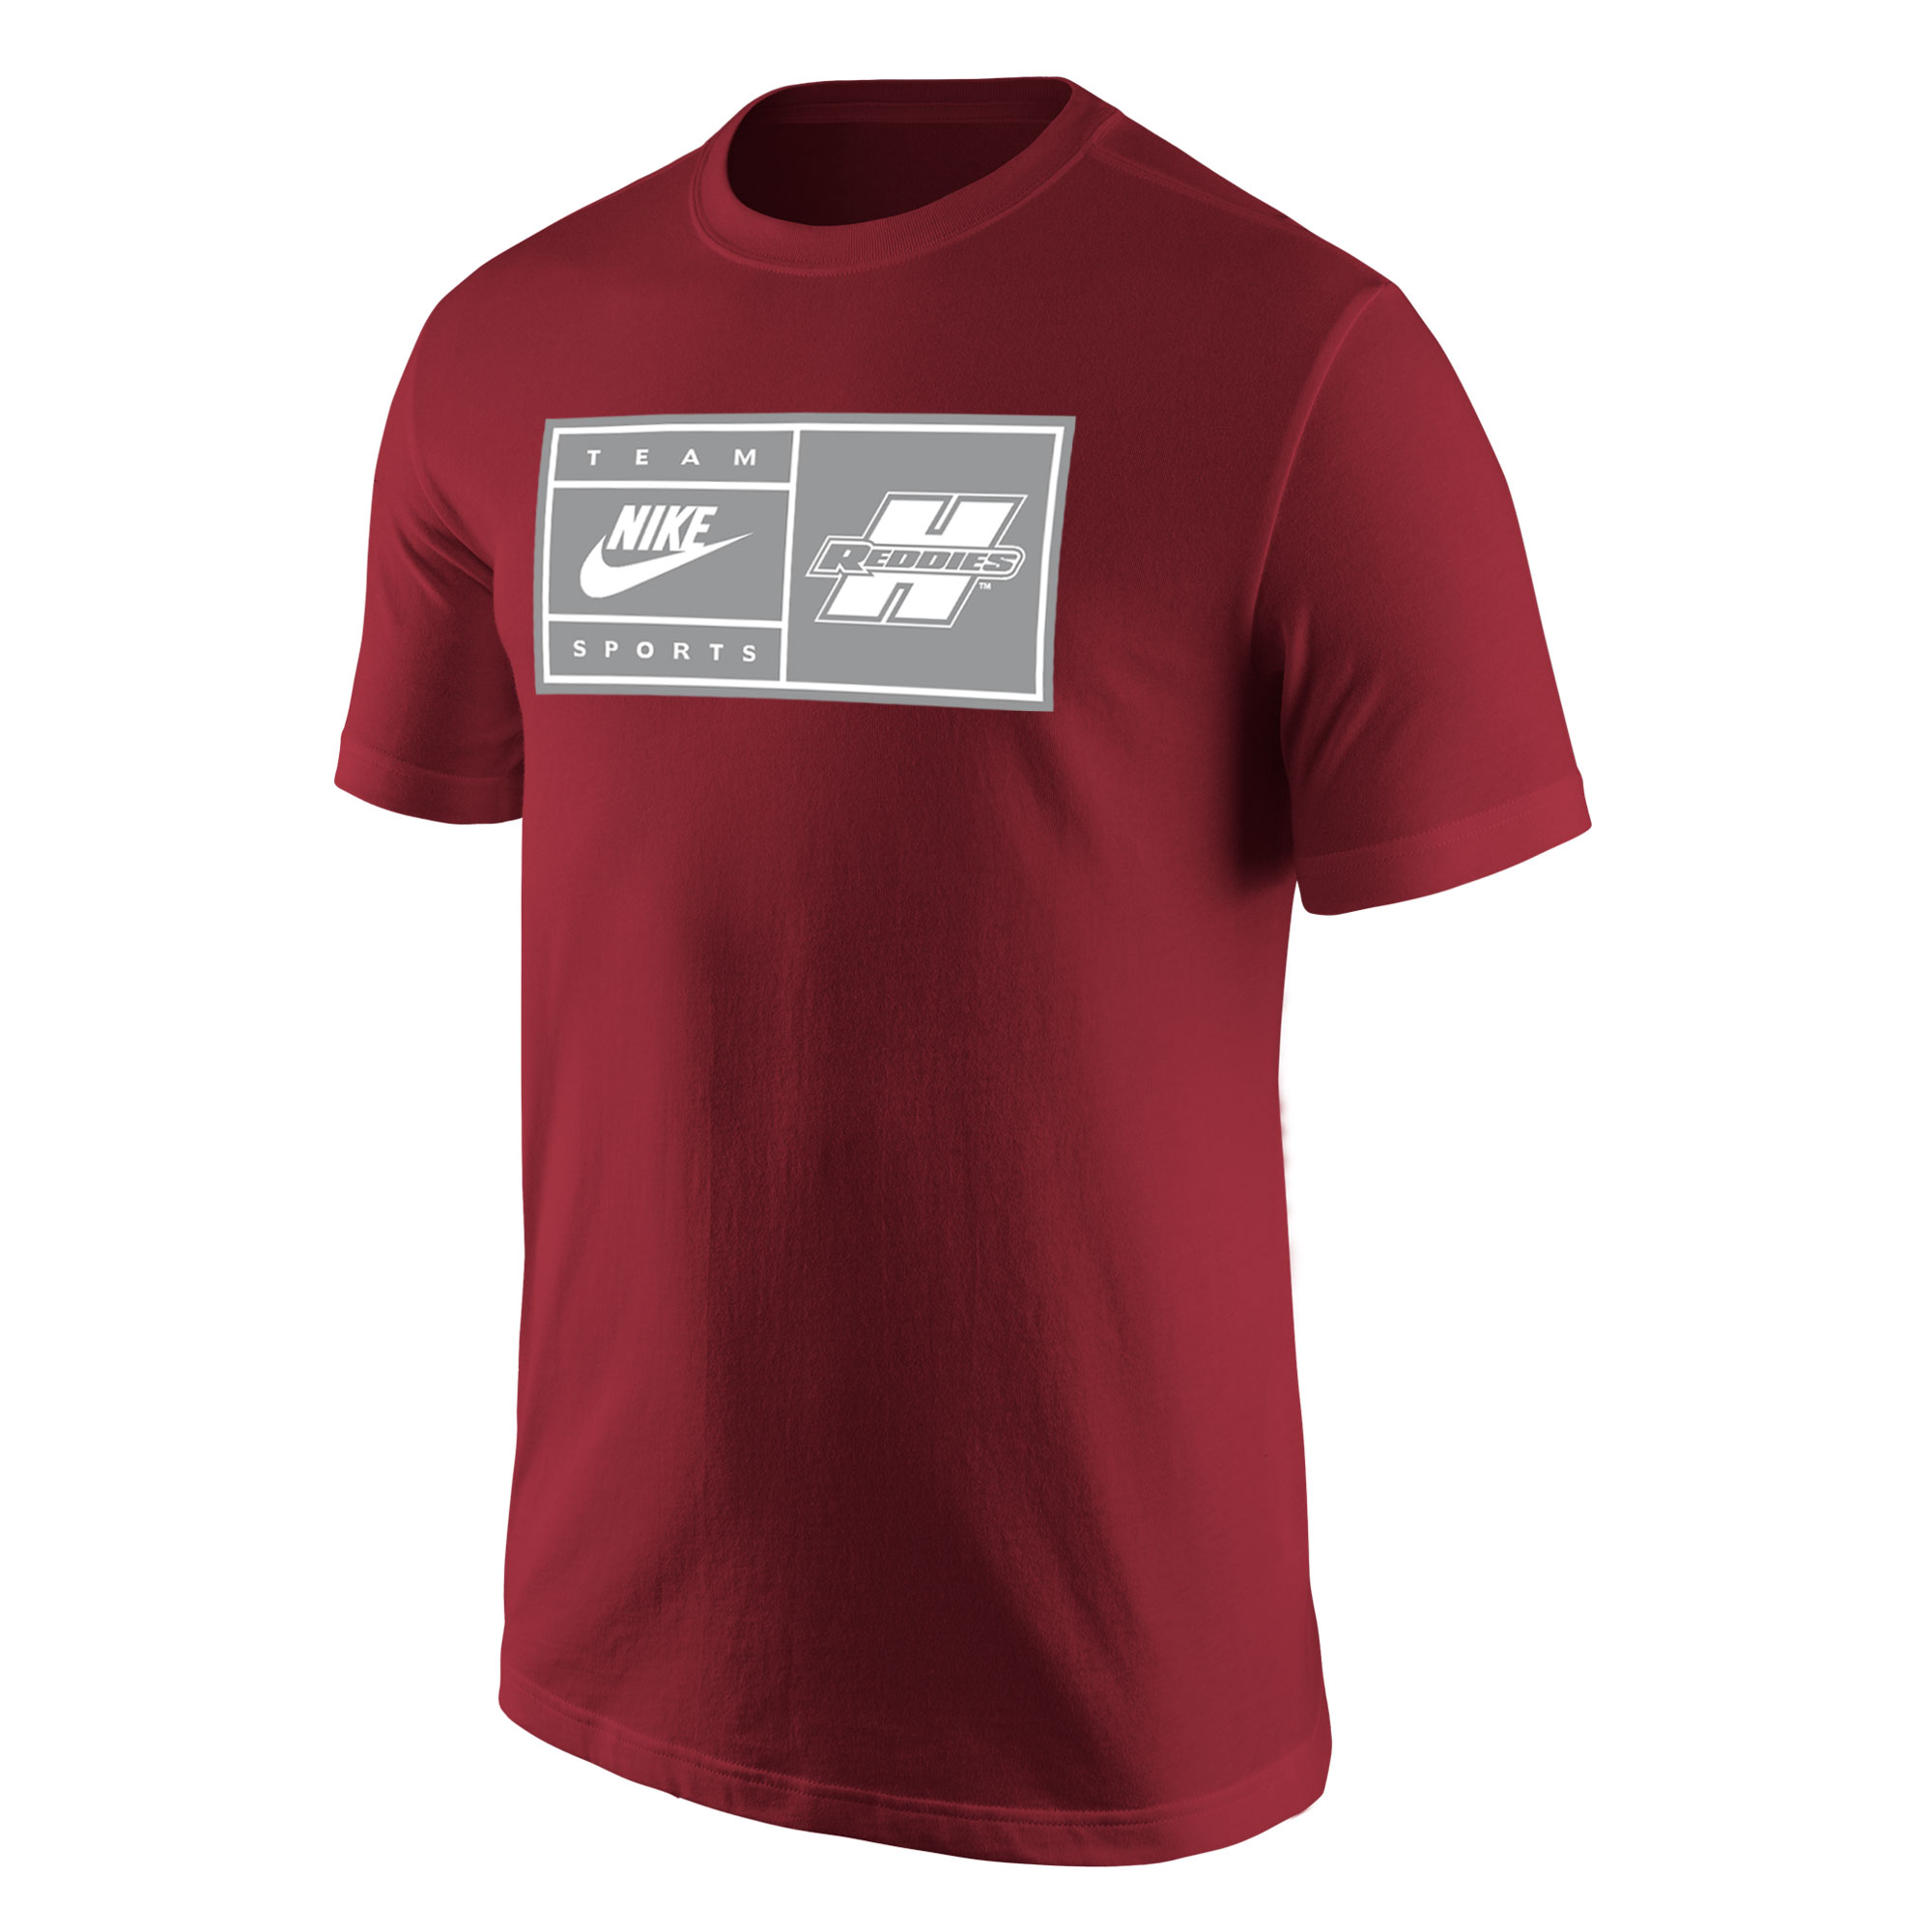 Henderson Reddies Nike Team Sports Short Sleeve T-Shirt